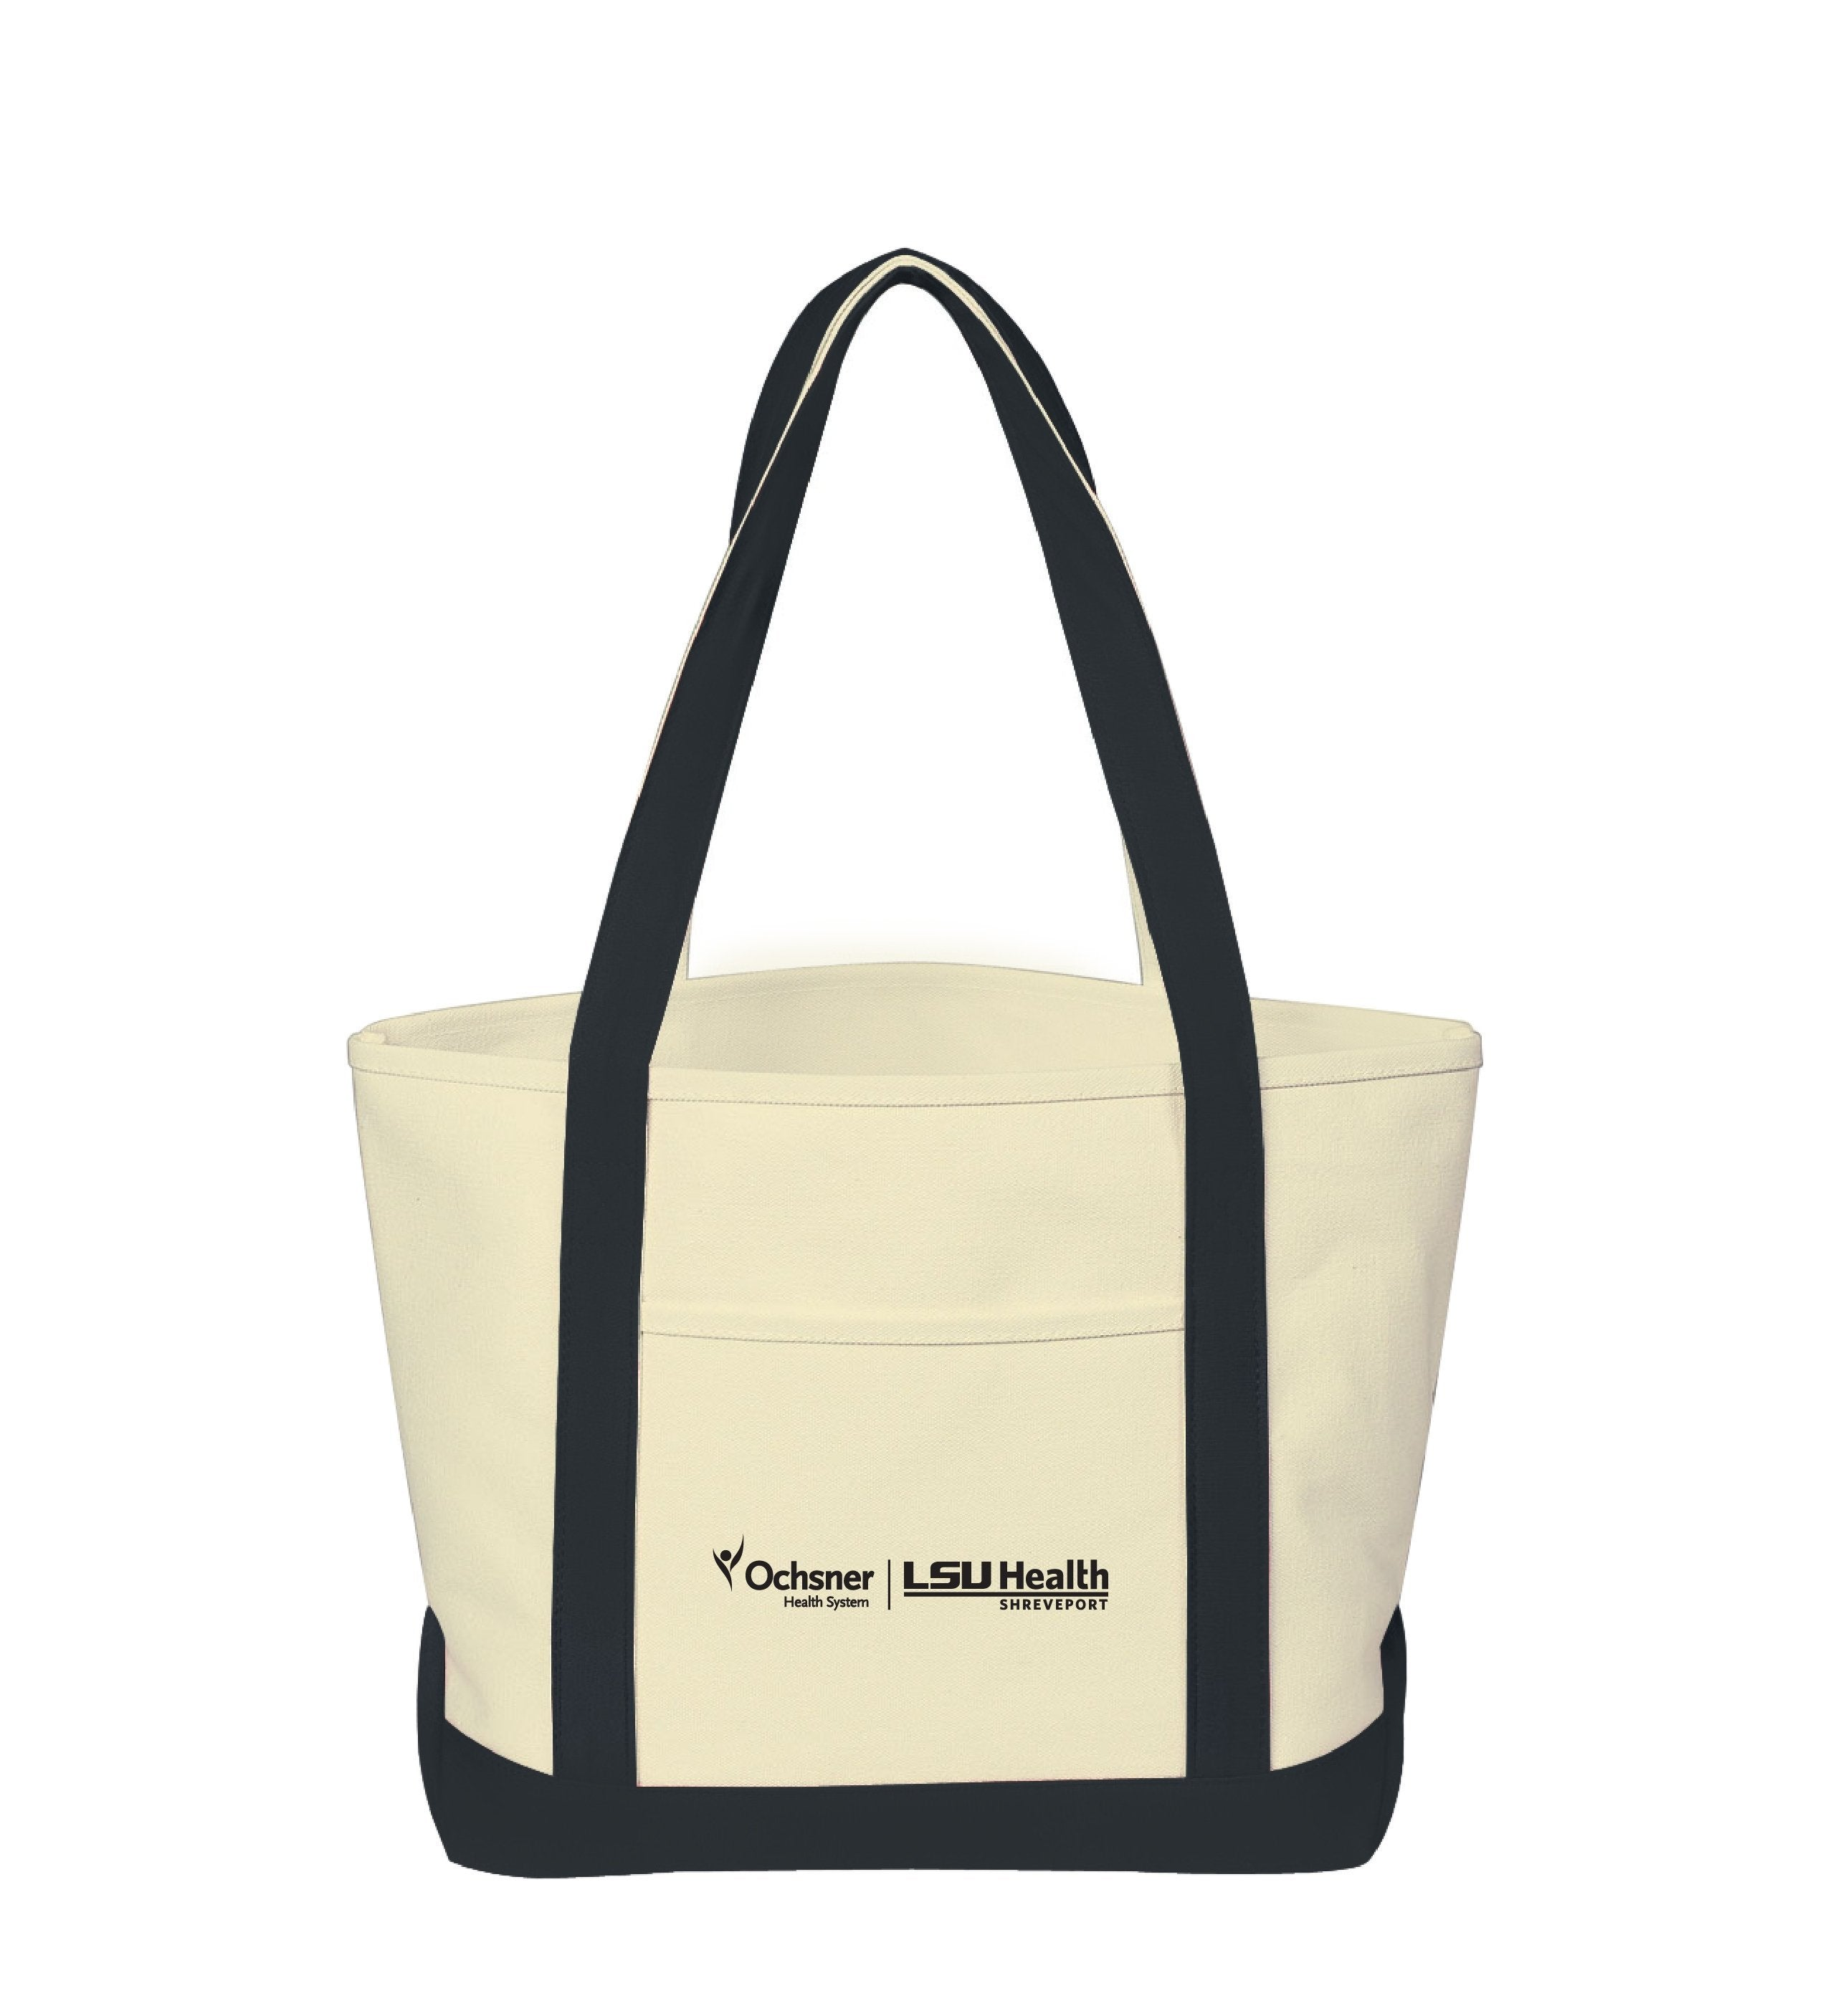 Ochsner/LSU Canvas Tote Bag